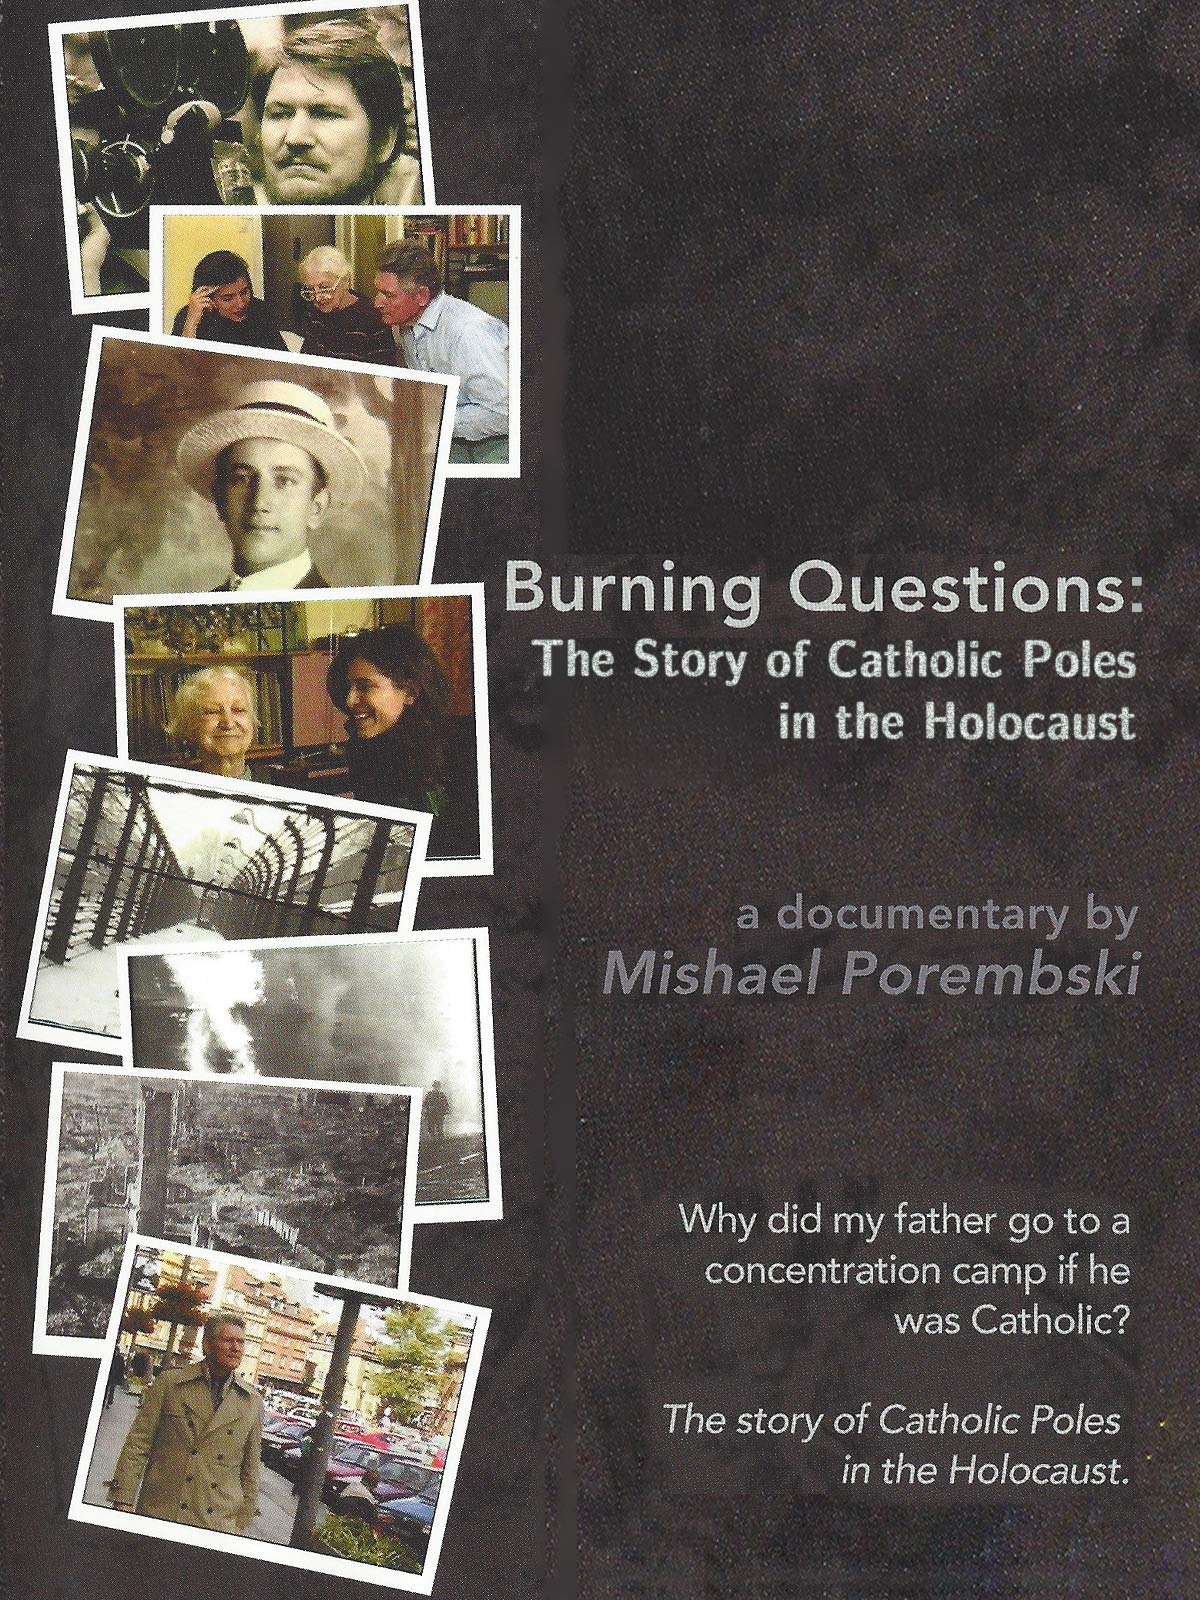 Burning Questions: The Story of Catholic Poles in the Holocaust